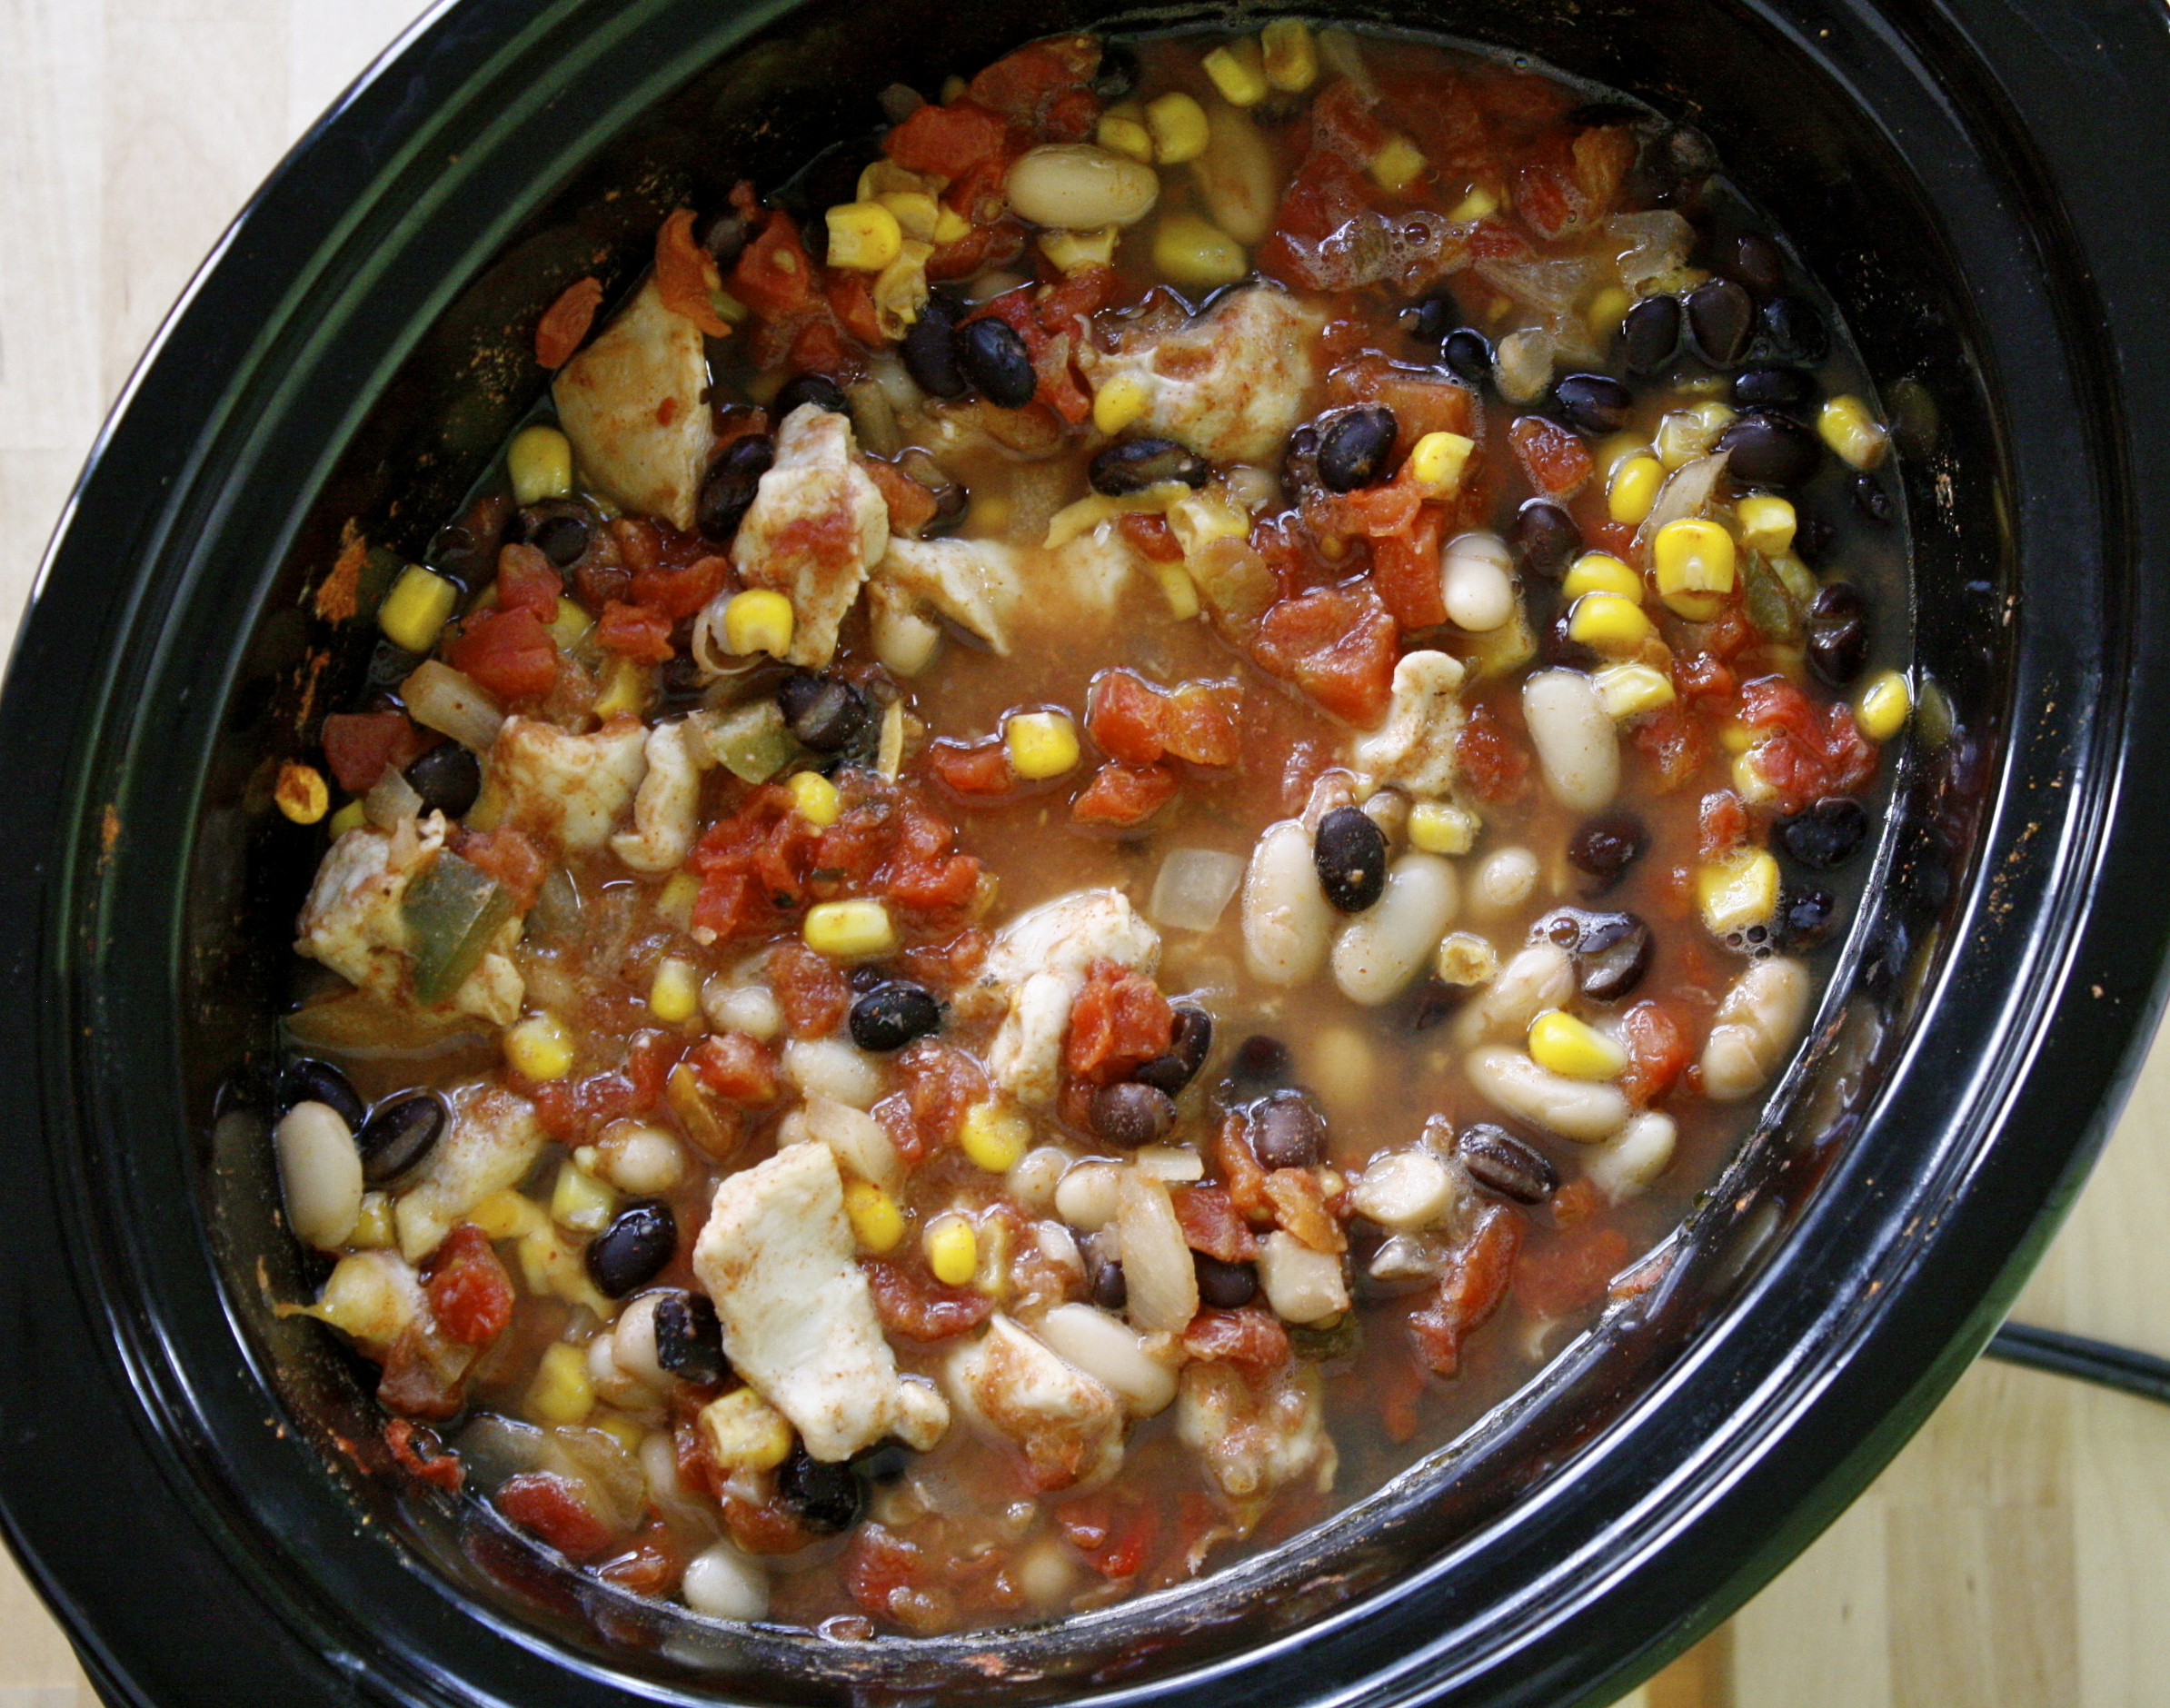 Freezer to slow cooker chicken chili new leaf wellness for Healthy crockpot recipes with chicken